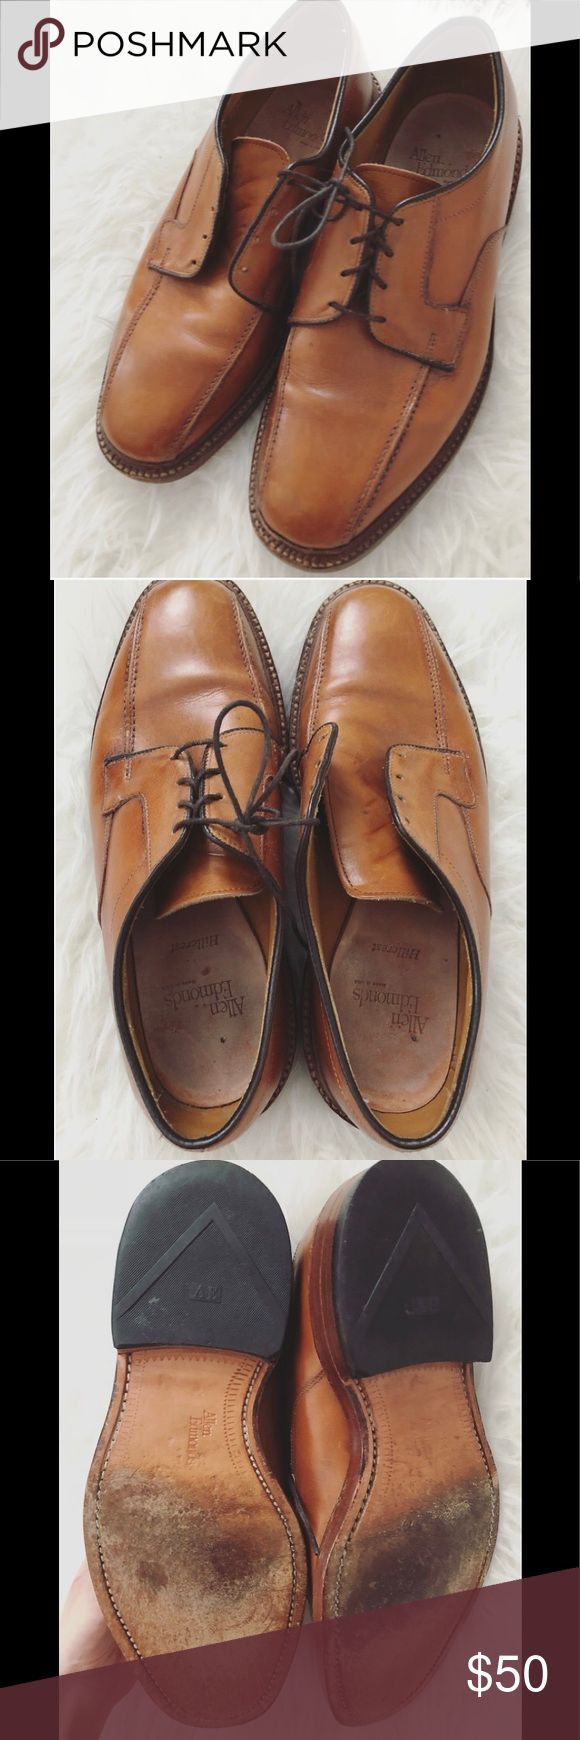 Men's Allen Edmonds HillCrest Shoe Men's Allen Edmonds HillCrest Shoe. These shoes are in preloved condition, and one of the shoes is missing it's shoe lace. If you can replace the lace, these will make a nice pair of shoes for work or everyday wear! Size 7.5. Allen Edmonds Shoes Oxfords & Derbys